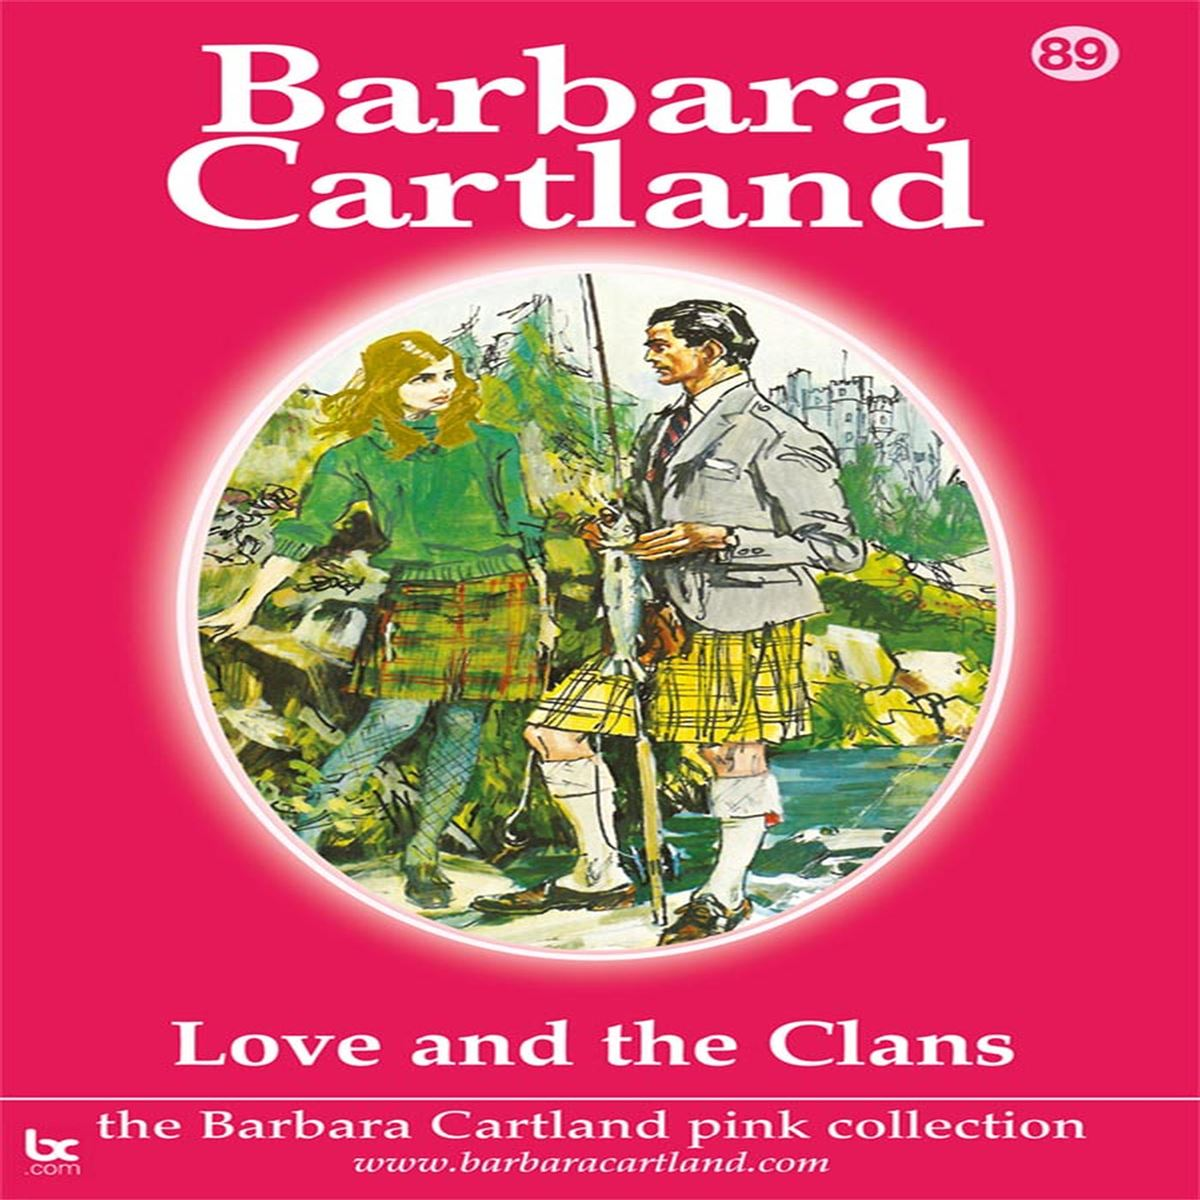 Love and the Clans